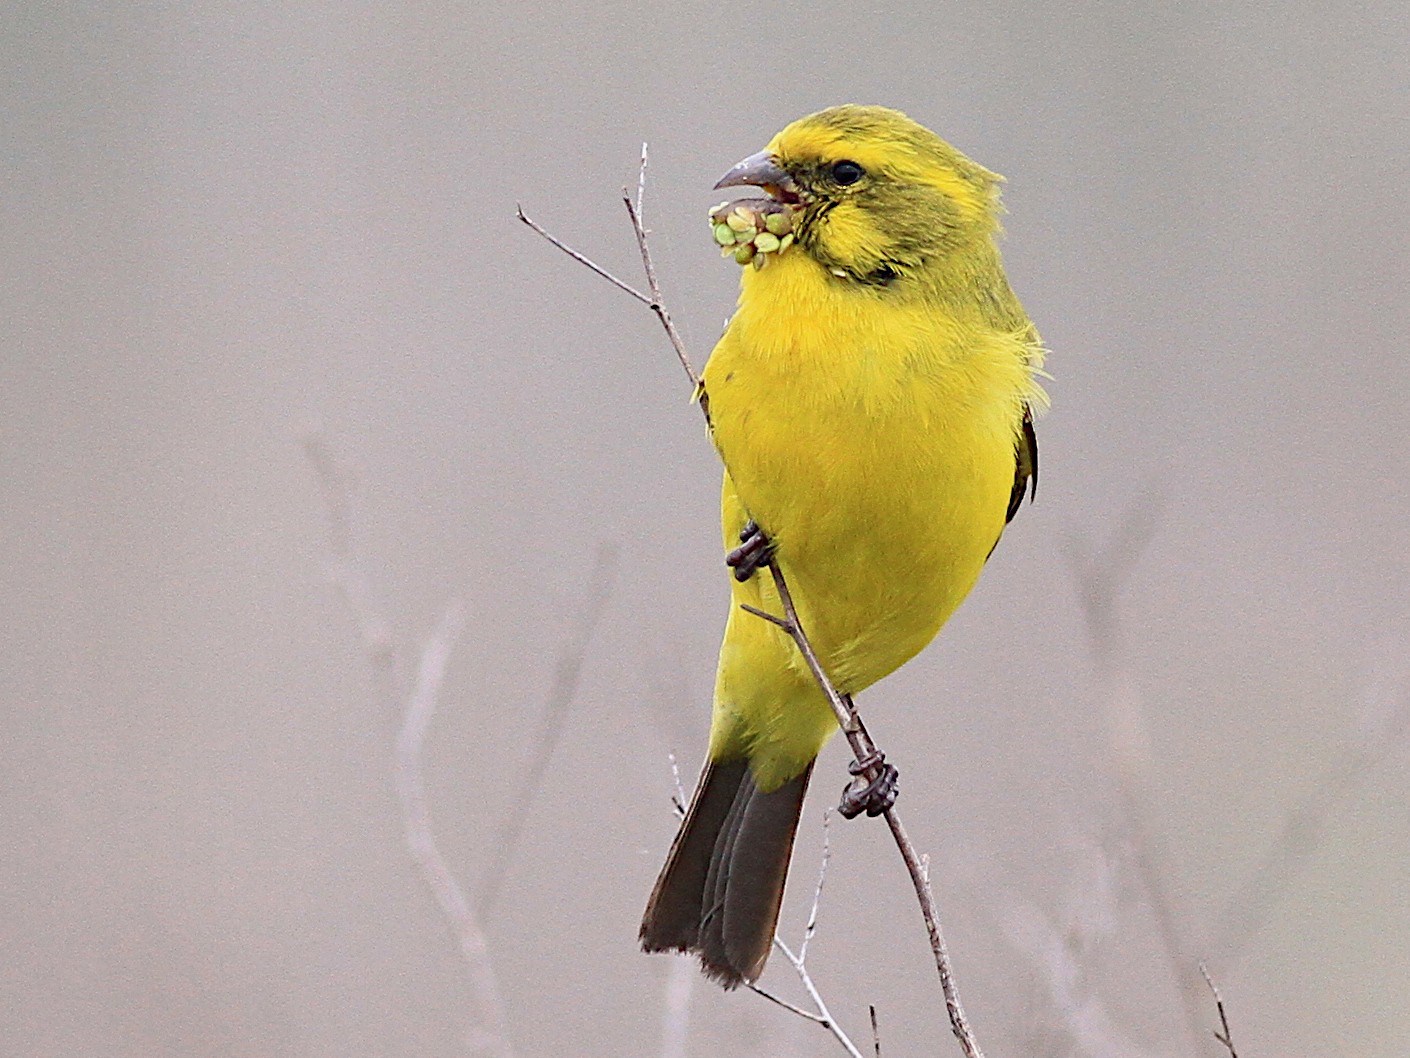 Yellow Canary - Michael McCloy